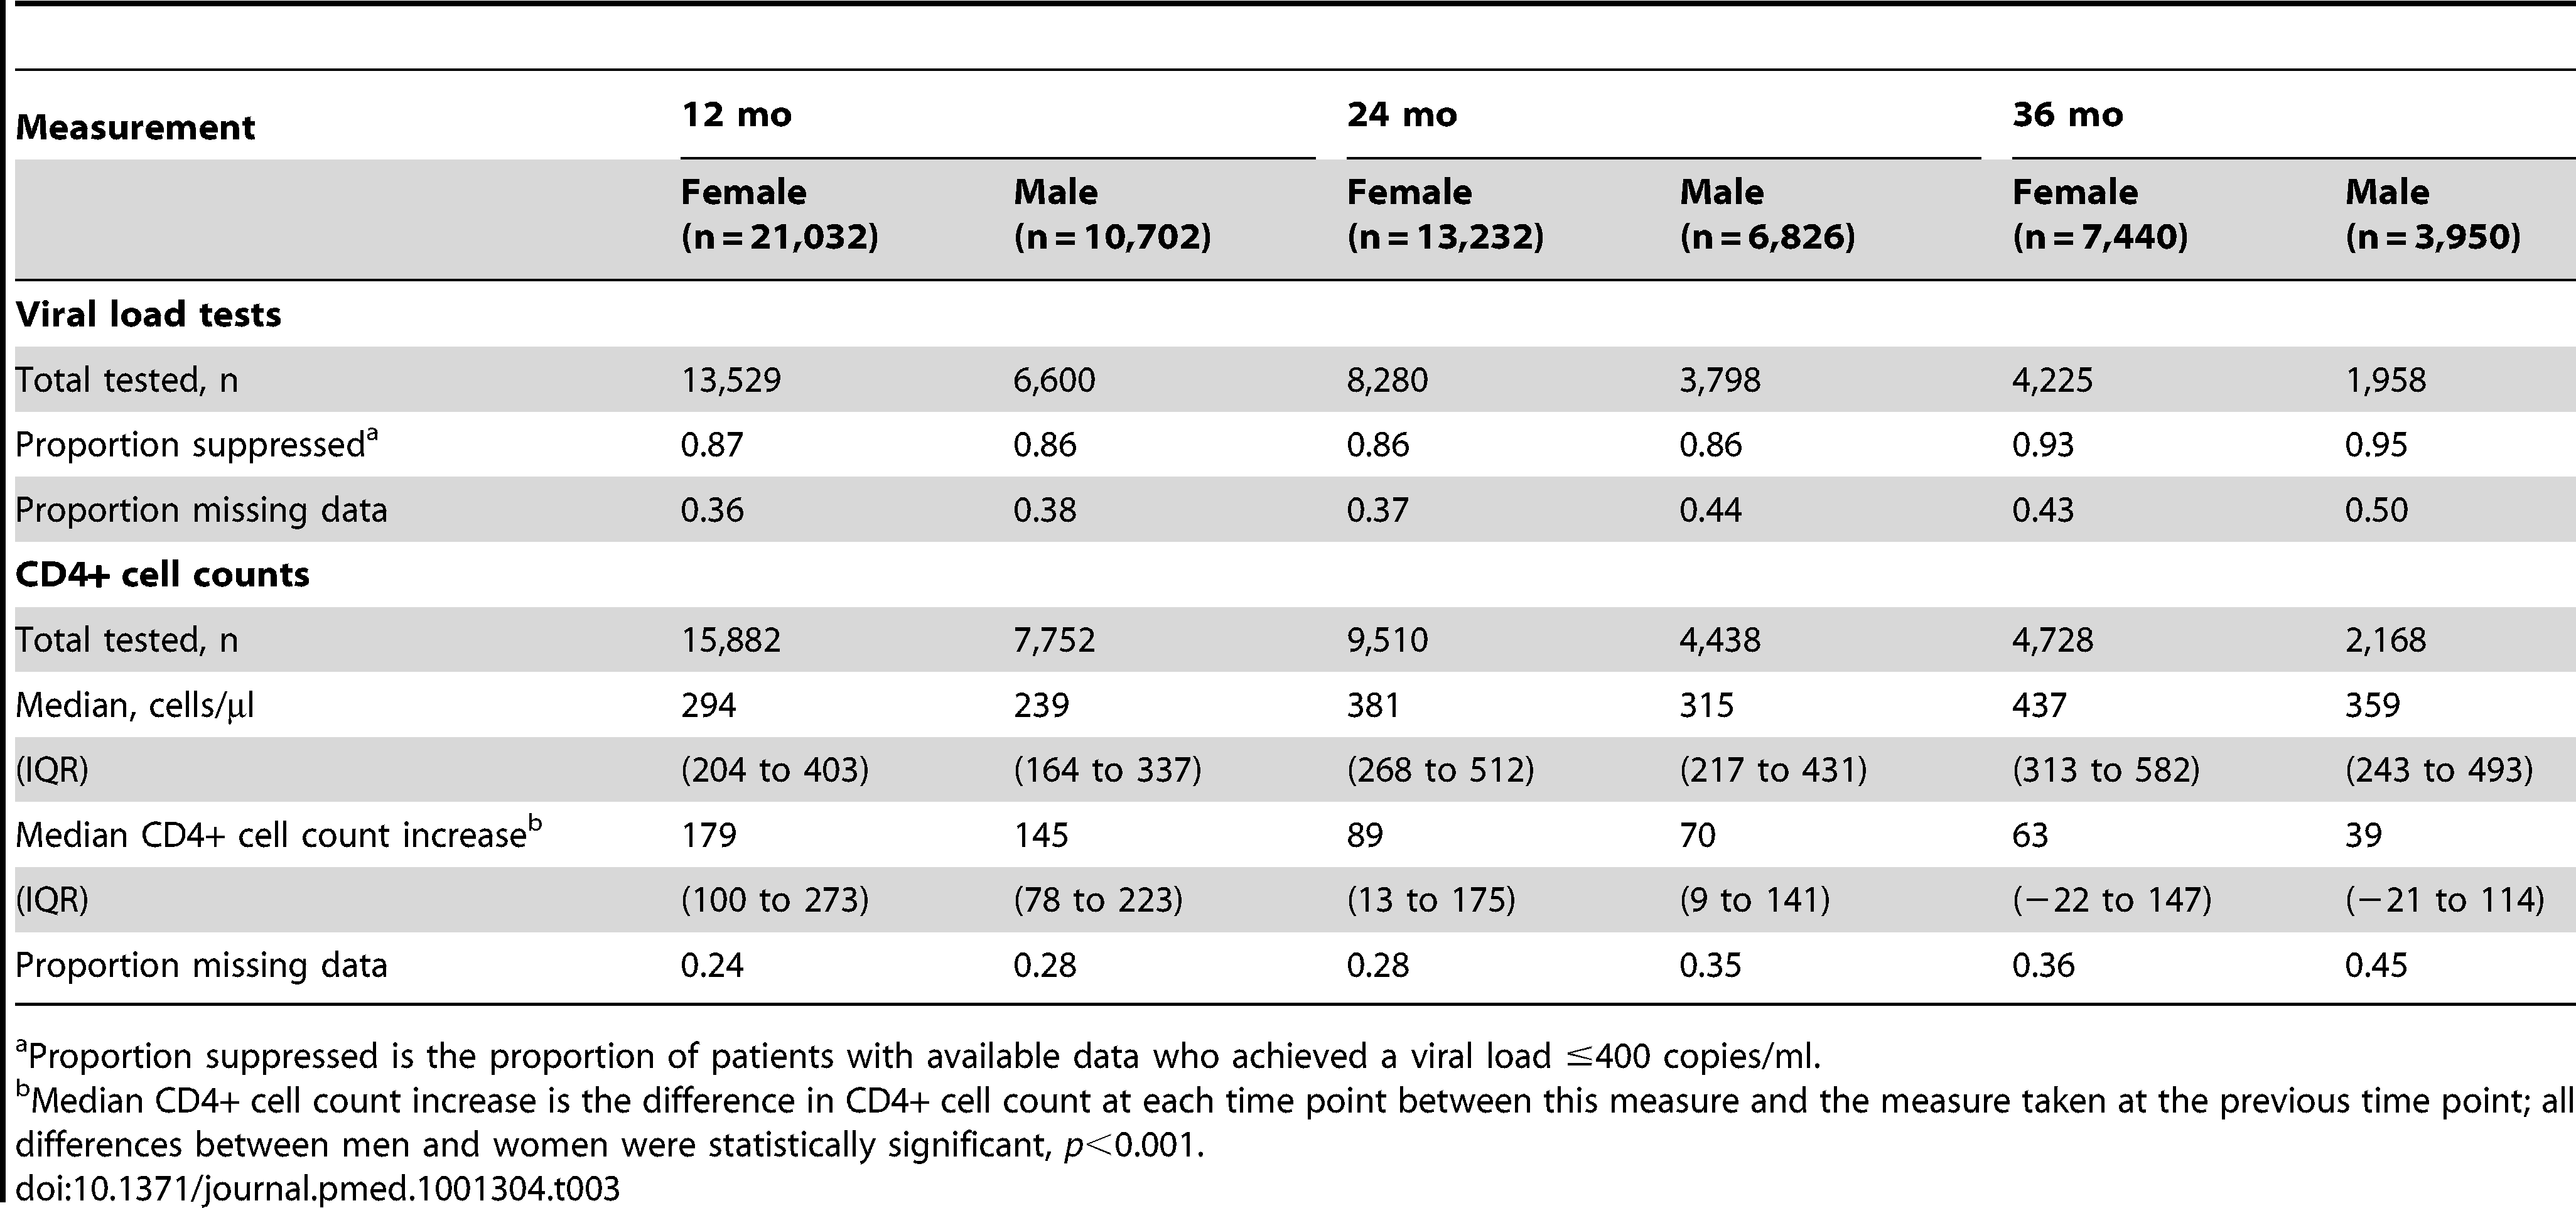 Virologic and immunologic responses by gender and duration on ART.